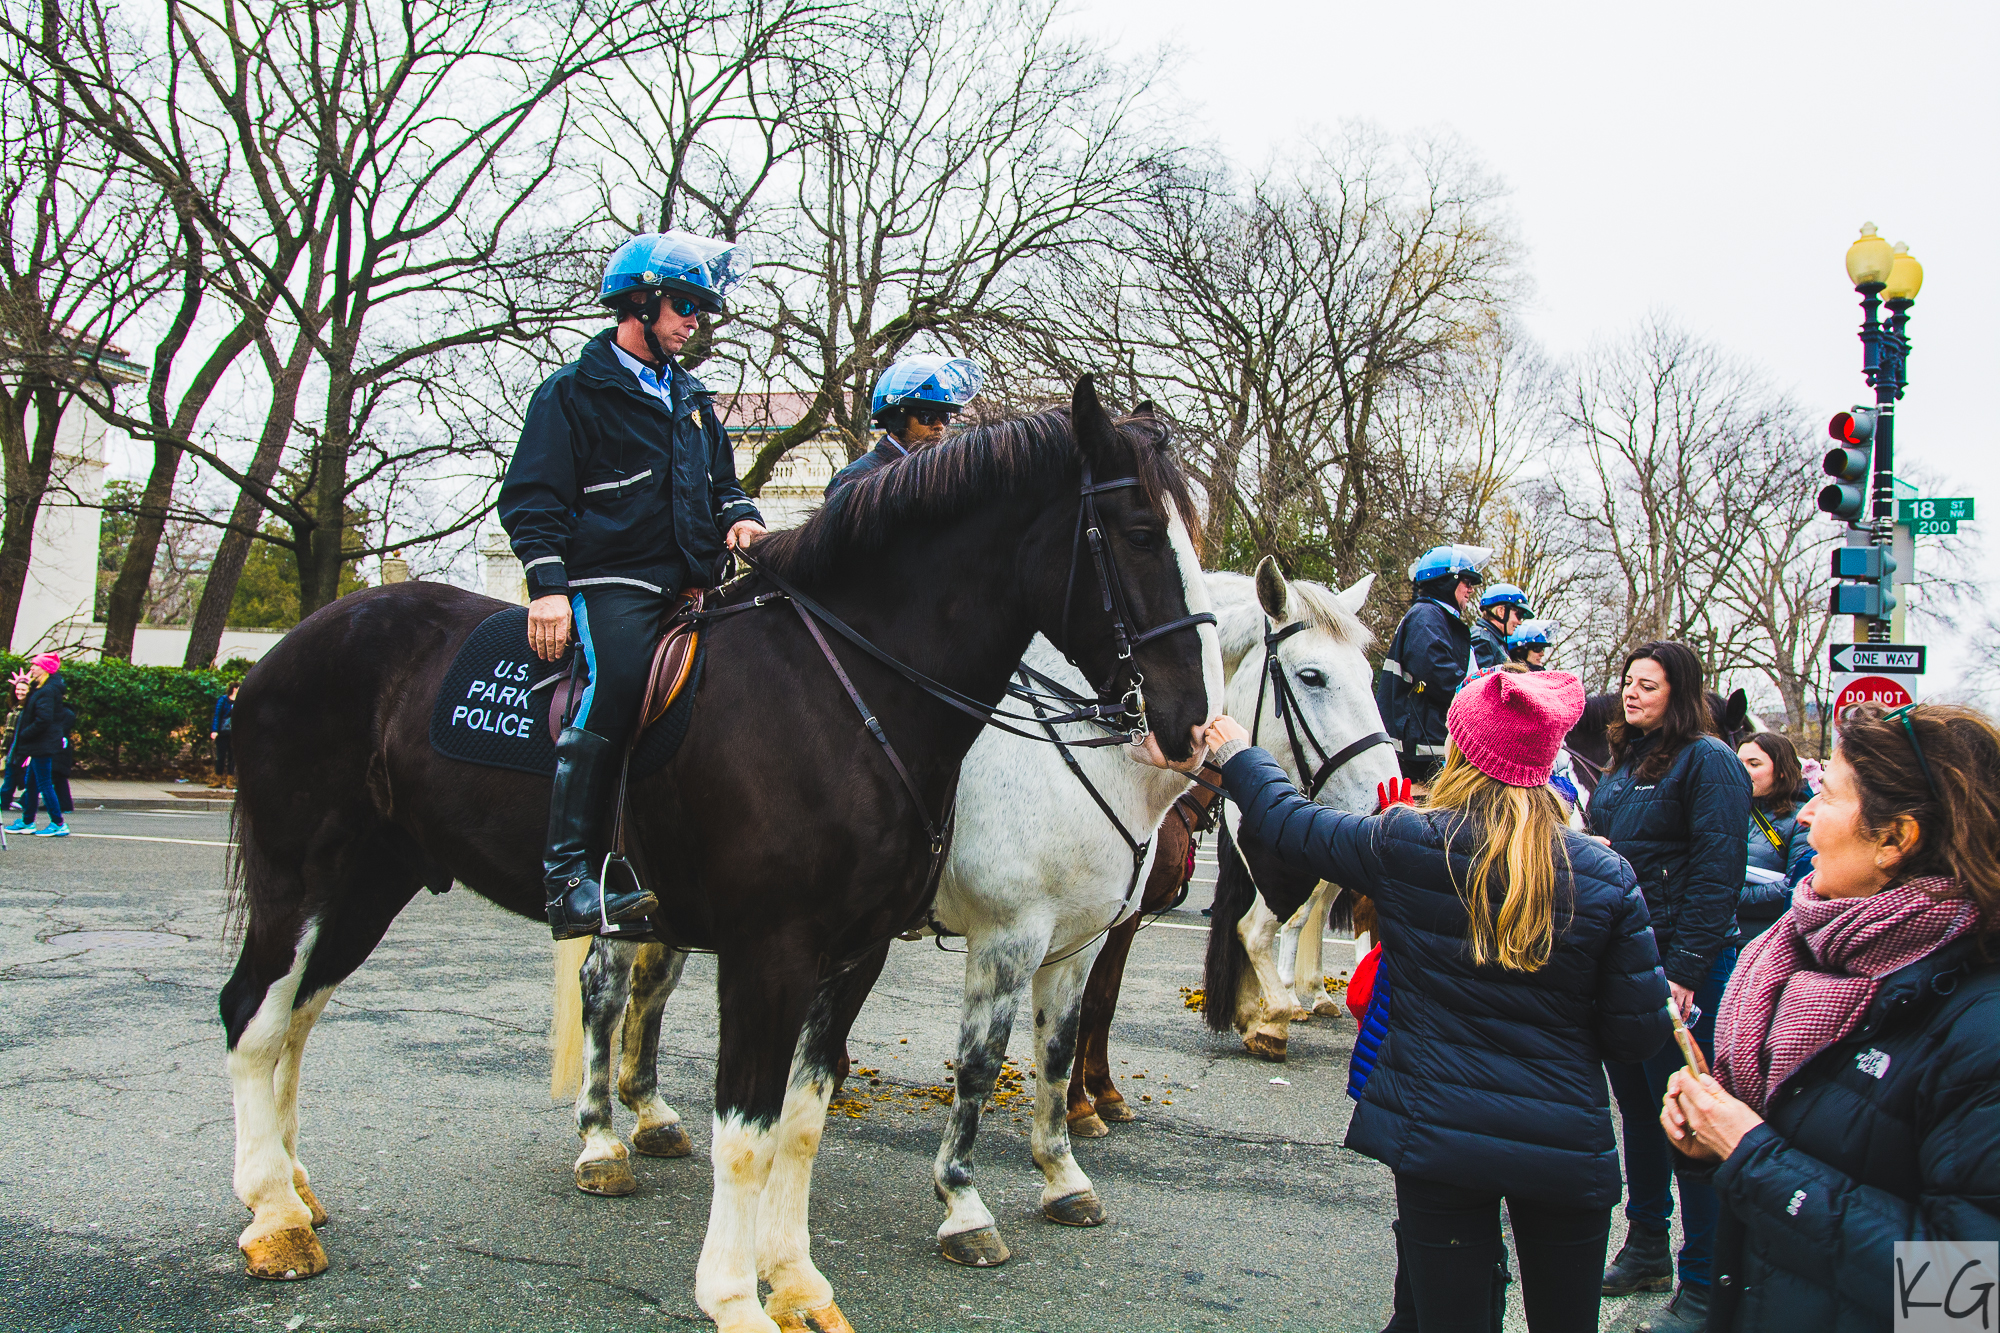 Police horses hanging out